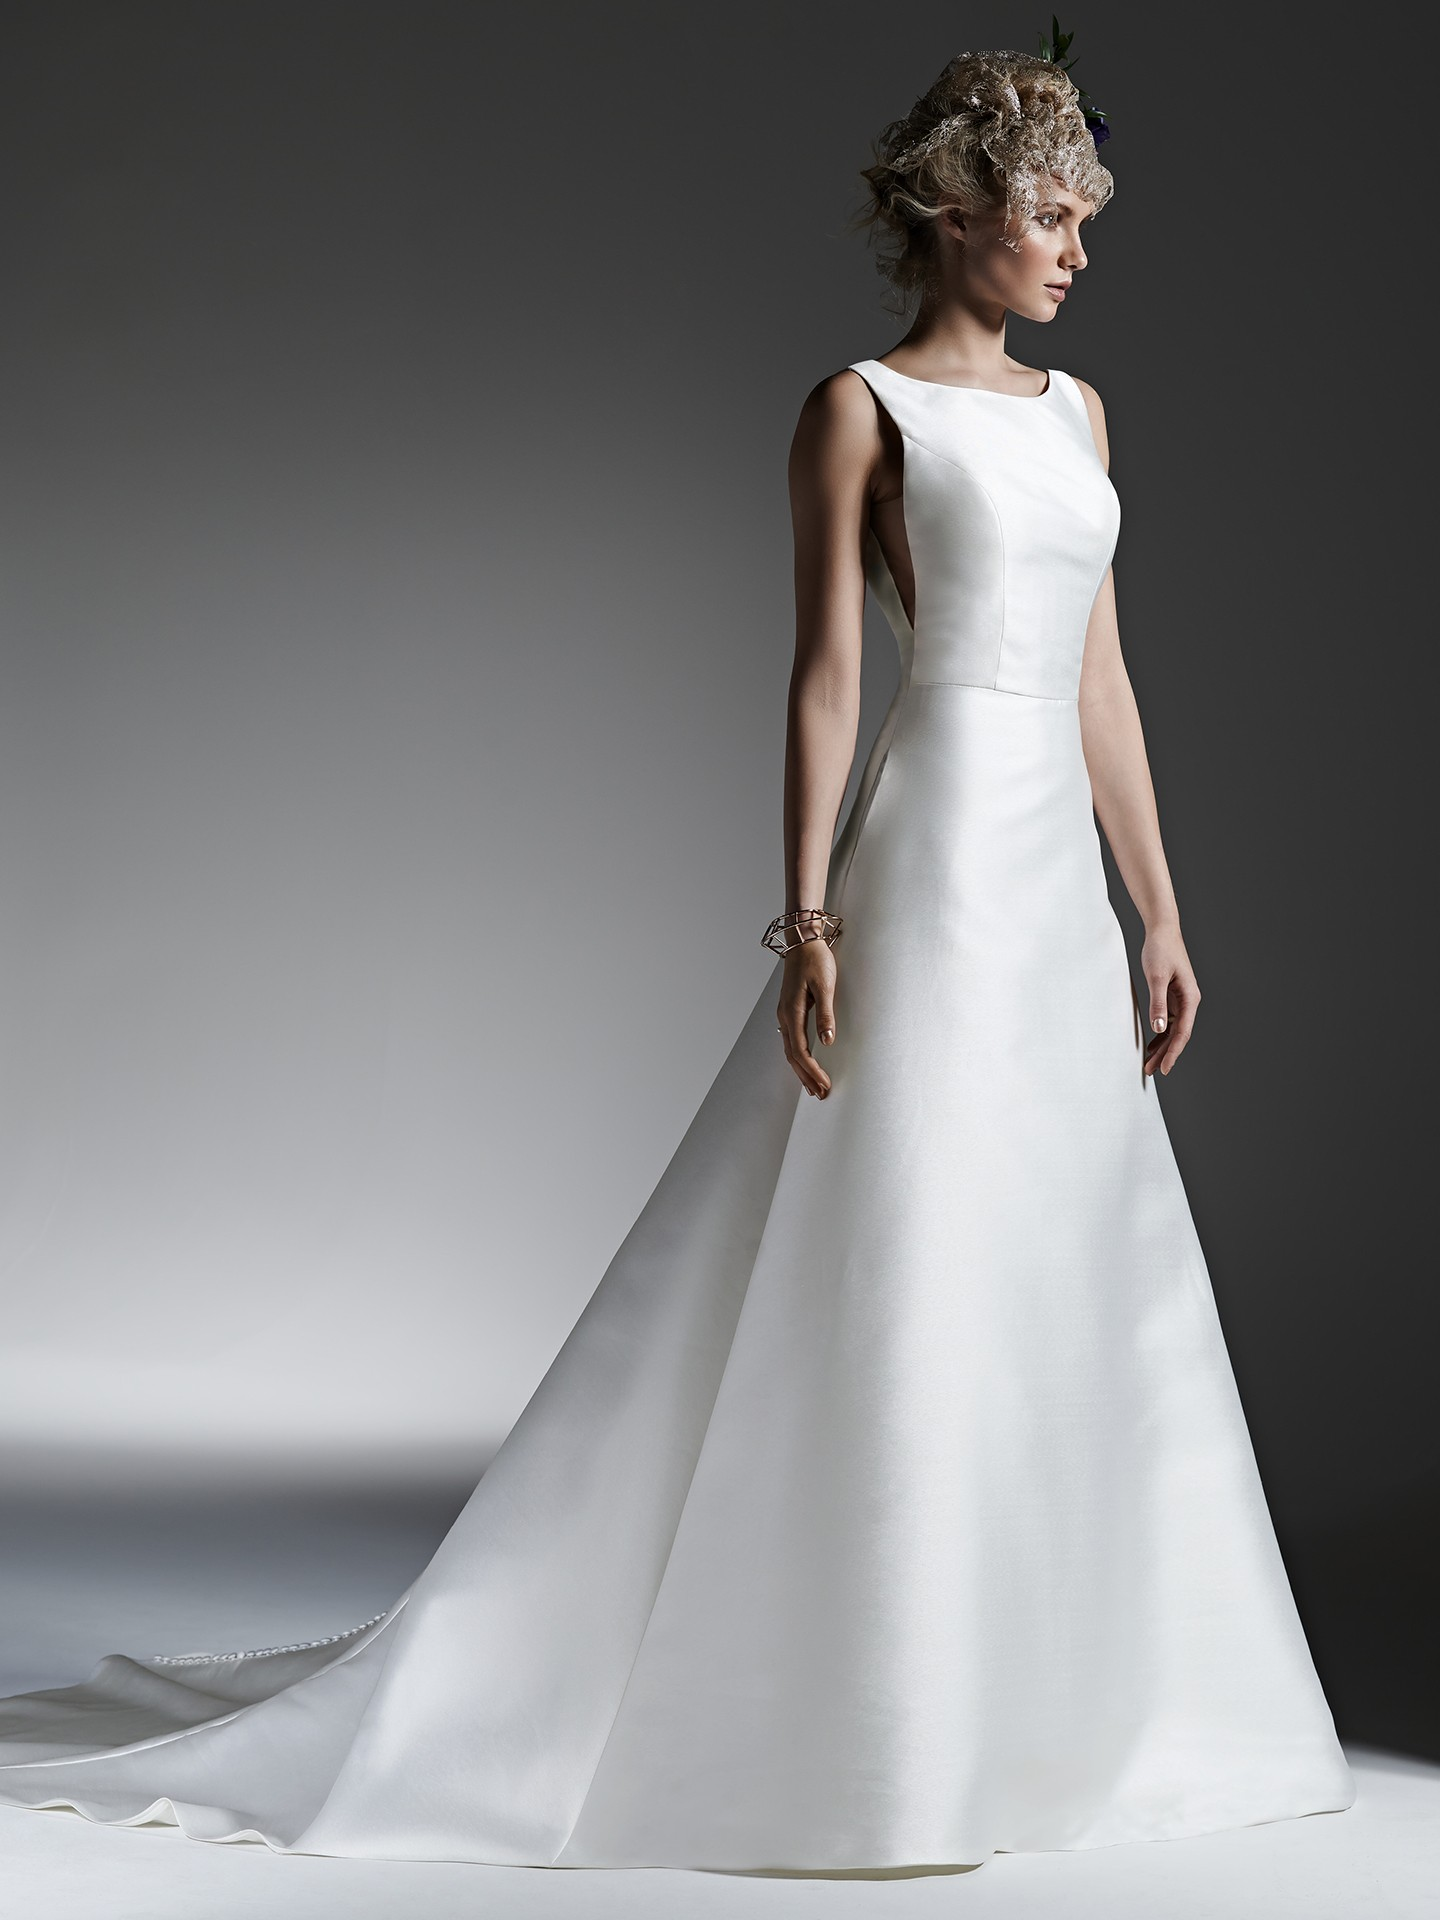 McCall wedding dress by Sottero and Midgley. Follow us on Pinterest!